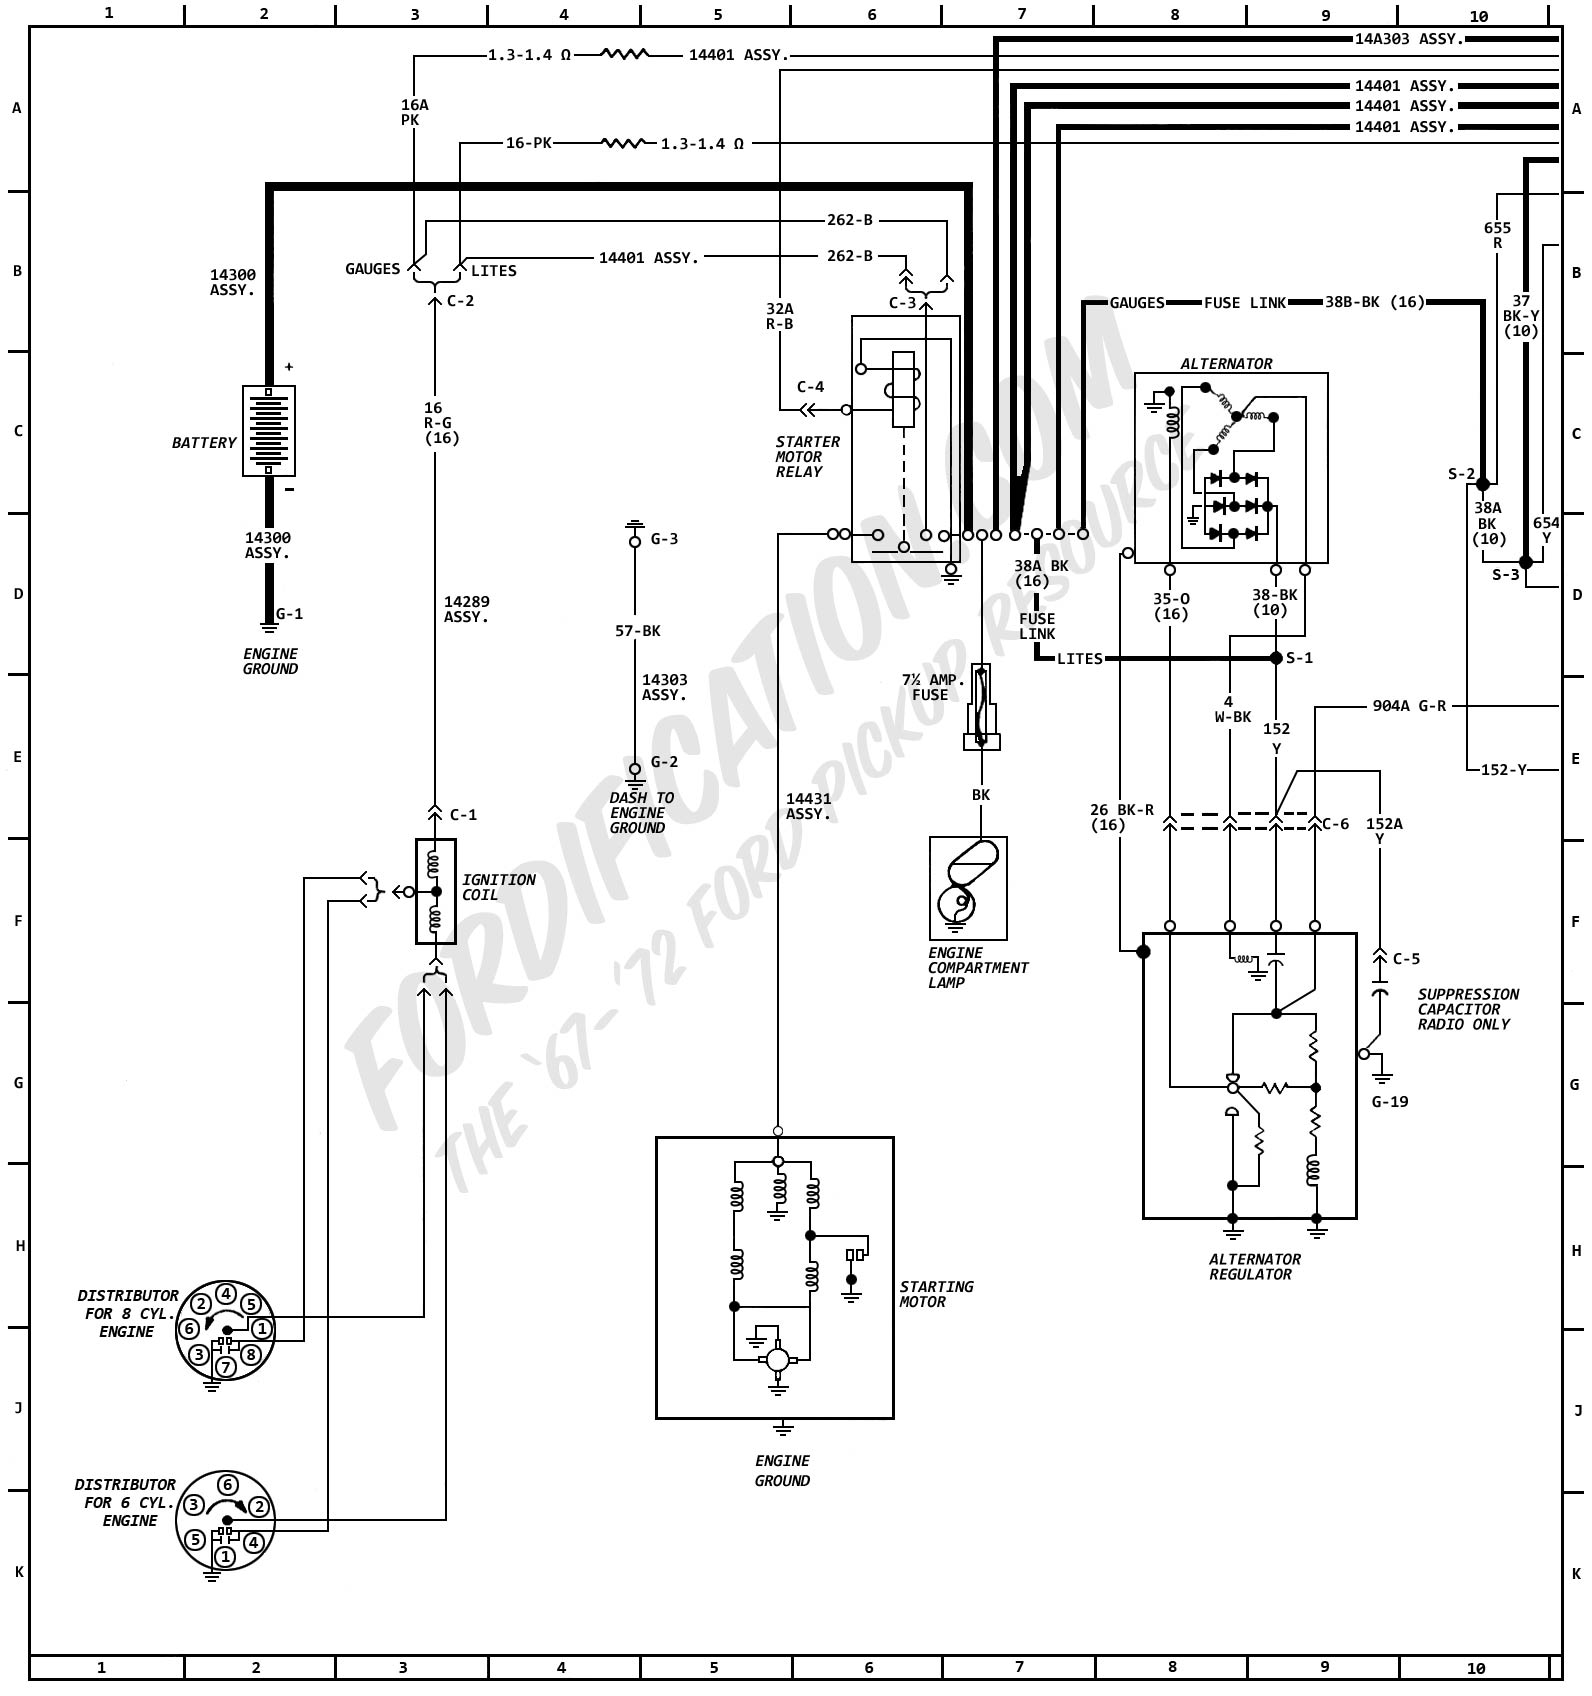 1972MasterWiring_01 1972 ford truck wiring diagrams fordification com GM Windshield Wiper Wiring Diagram at fashall.co